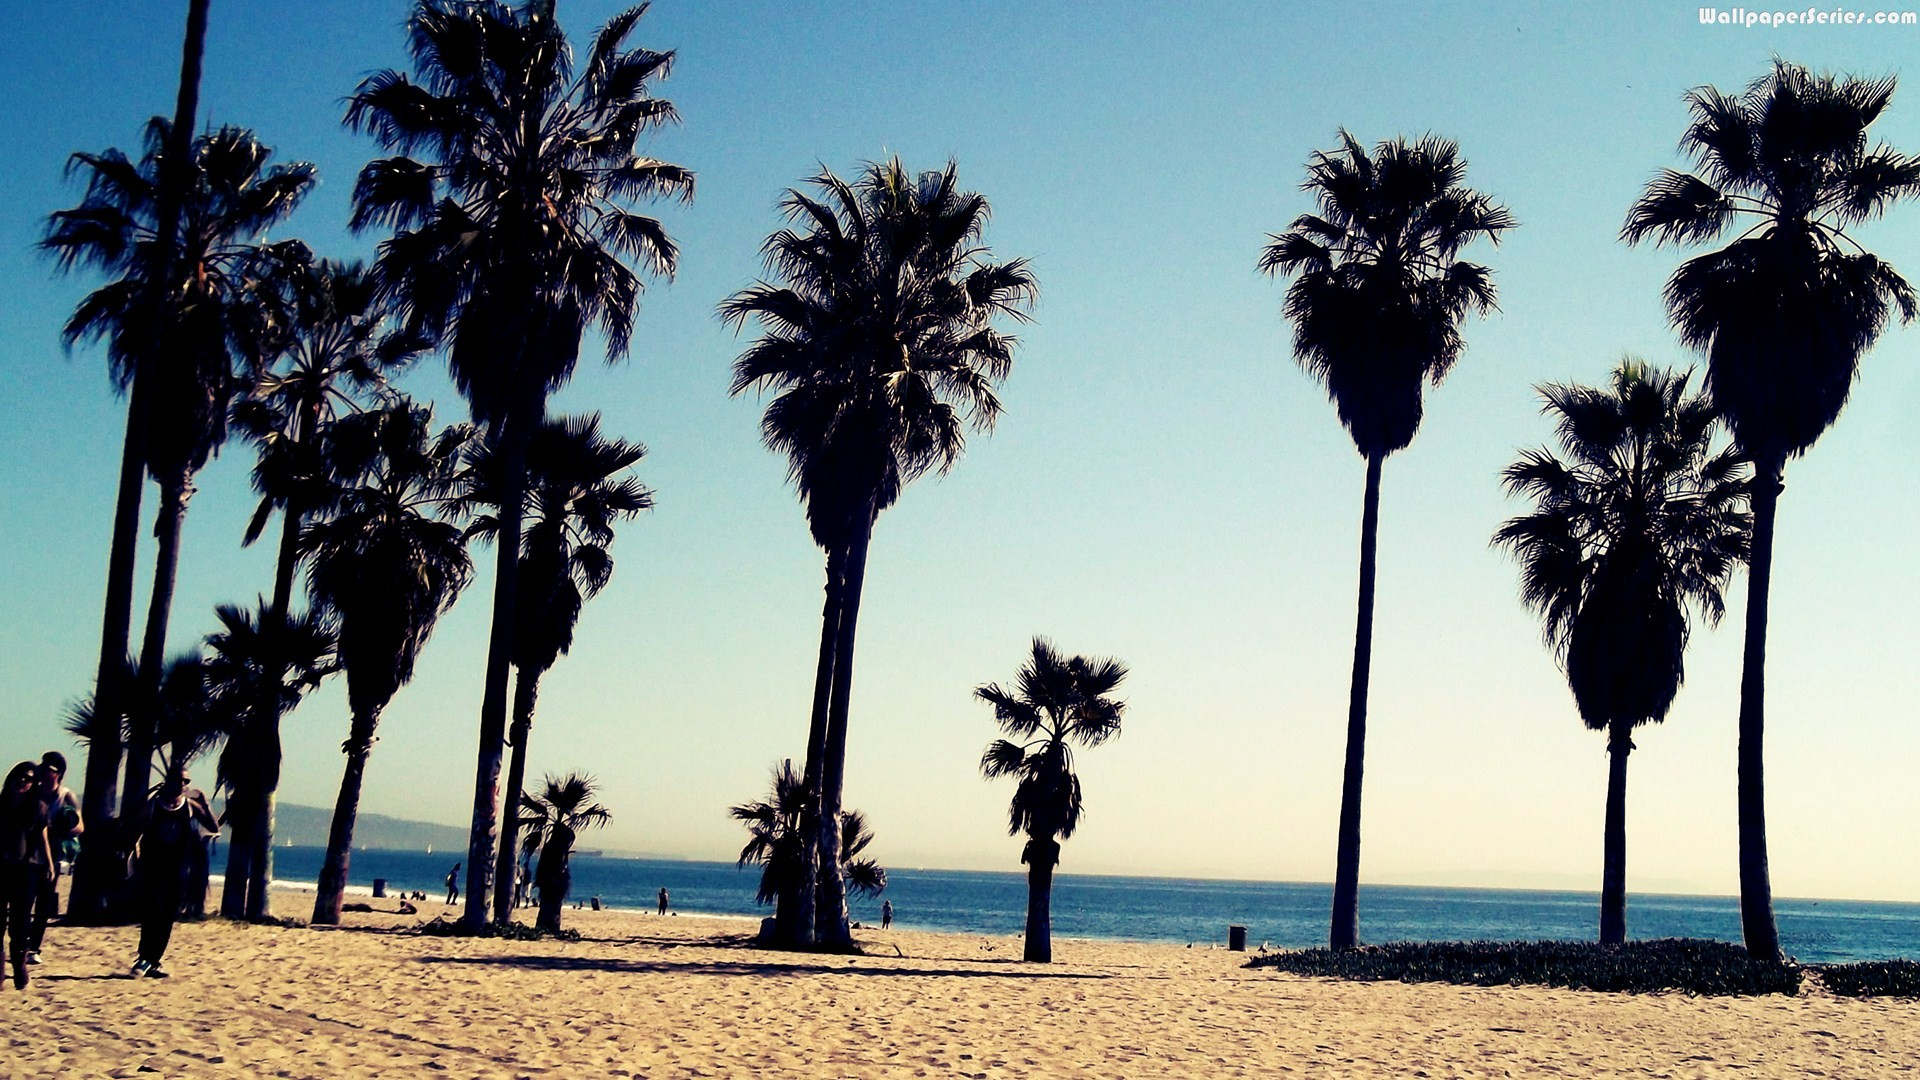 Venice Beach Wallpapers Wallpapersafari